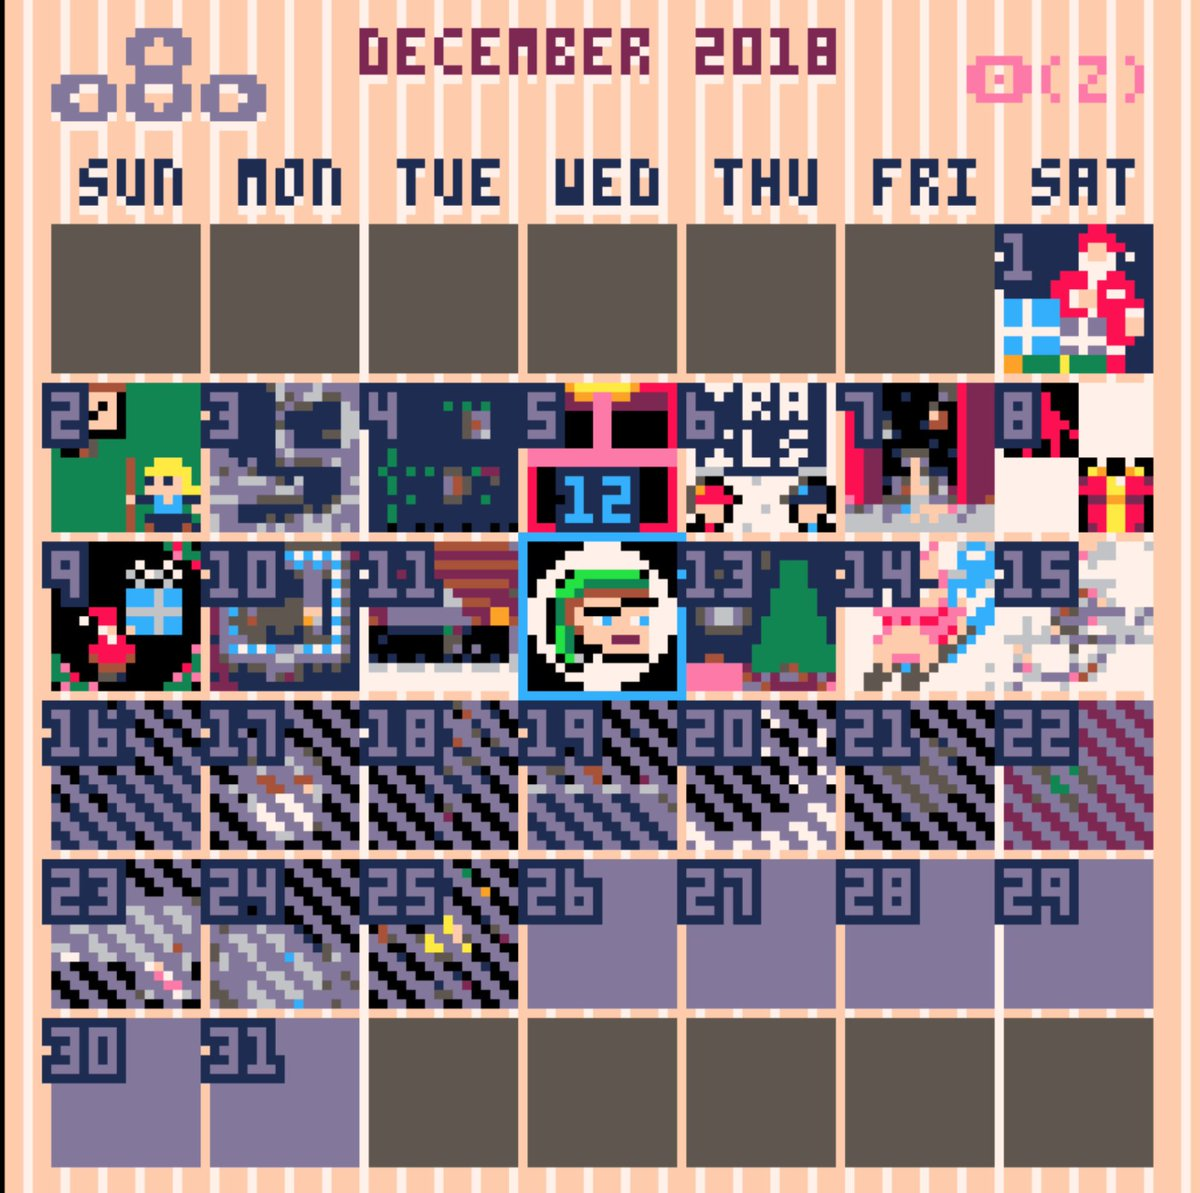 PICO-8 posts an Advent calendar of browser mini-games all month https://t.co/hOt8XOb76t